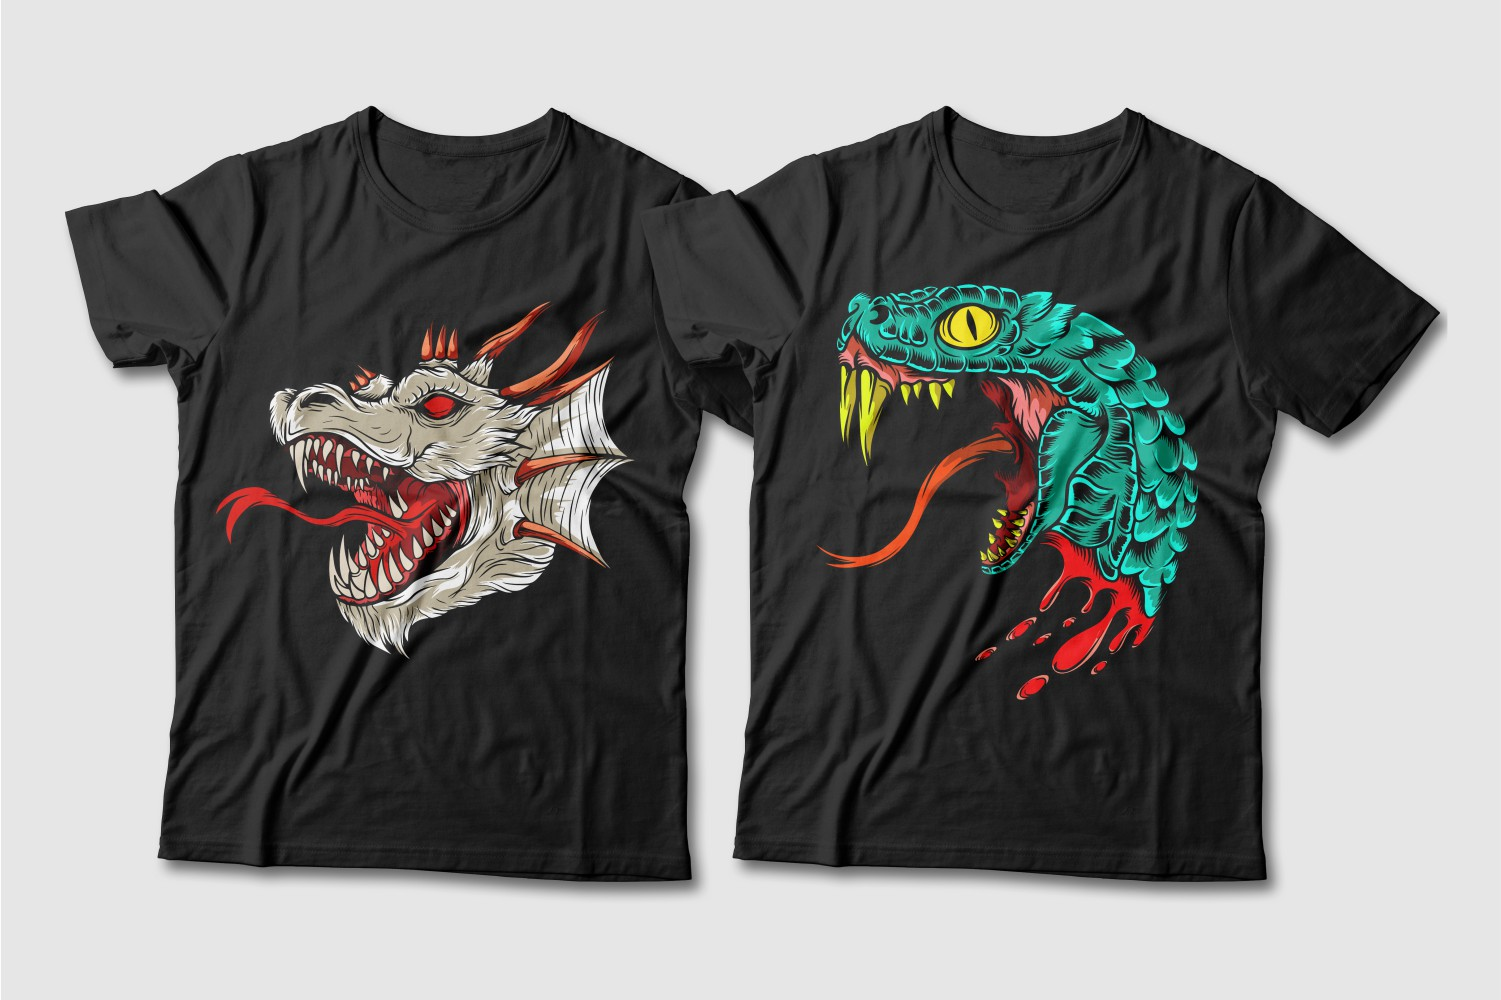 Black T-shirts with a crew neck and the image of a gray dragon with red horns and eyes and an emerald cobra with a yellow tongue.